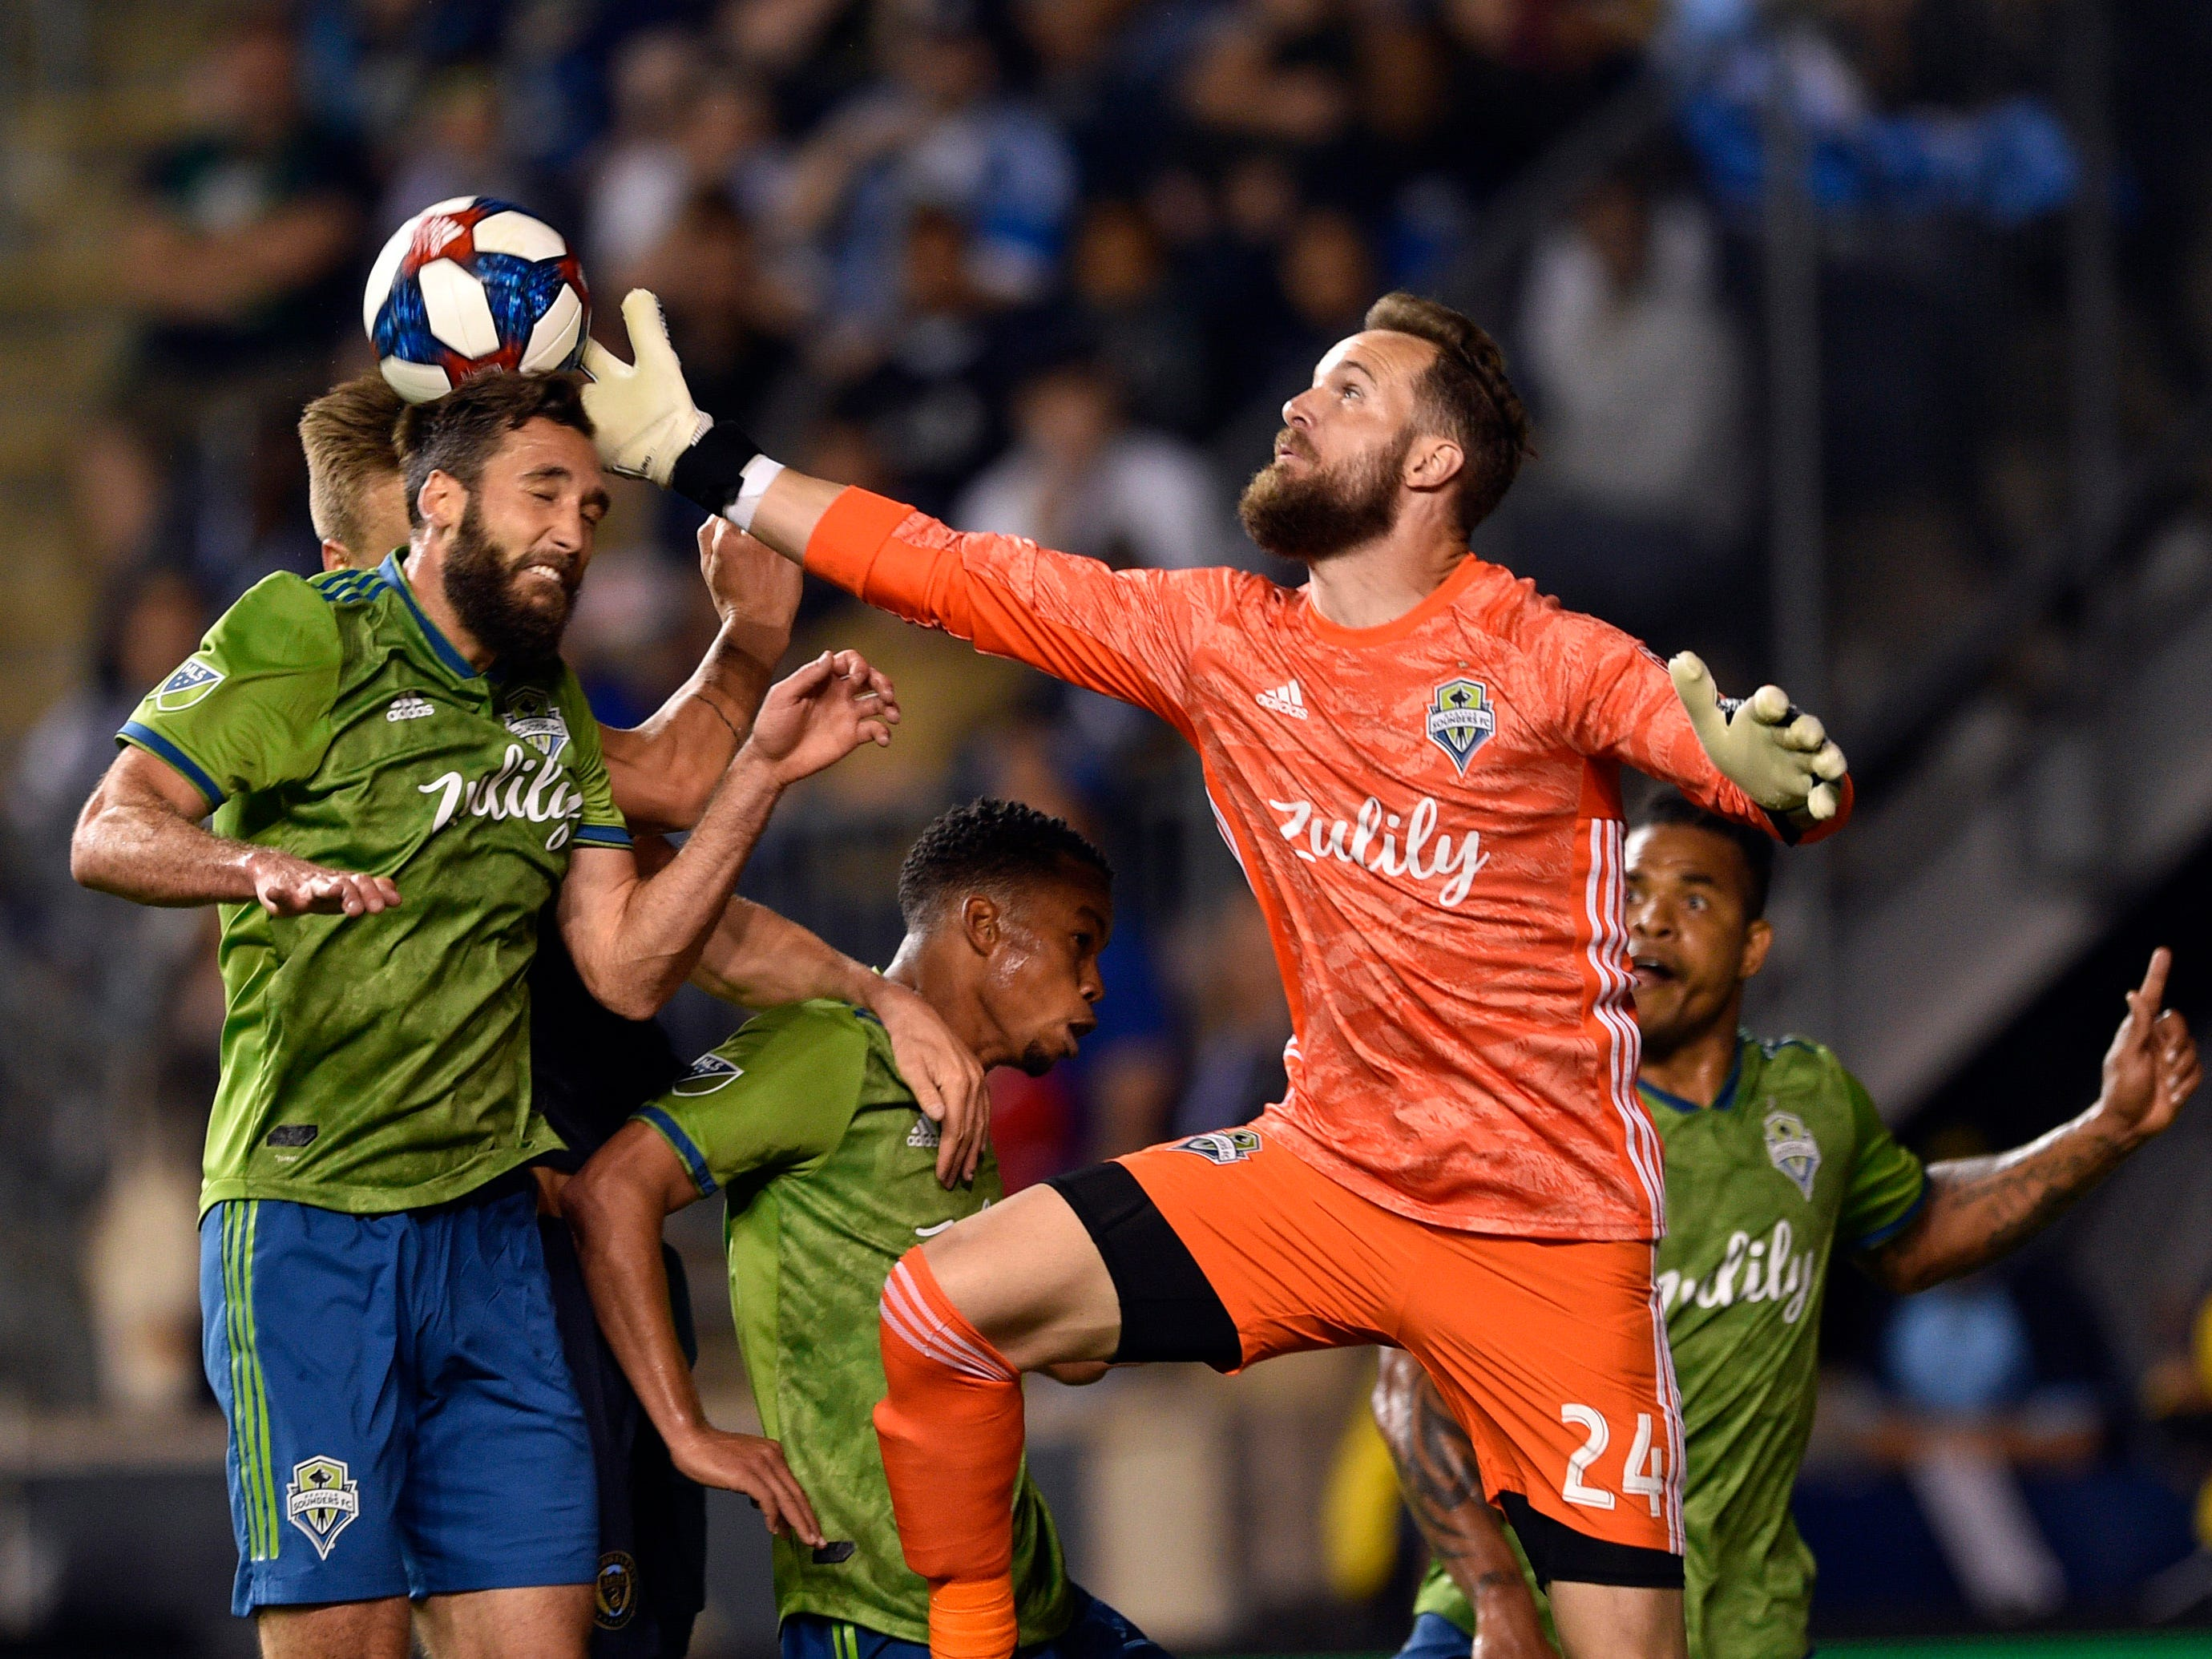 May 18: Seattle Sounders goalkeeper Stefan Frei reaches to make a save as Jonathan Campbell defends the shot during the second half against the Philadelphia Union at Talen Energy Stadium.